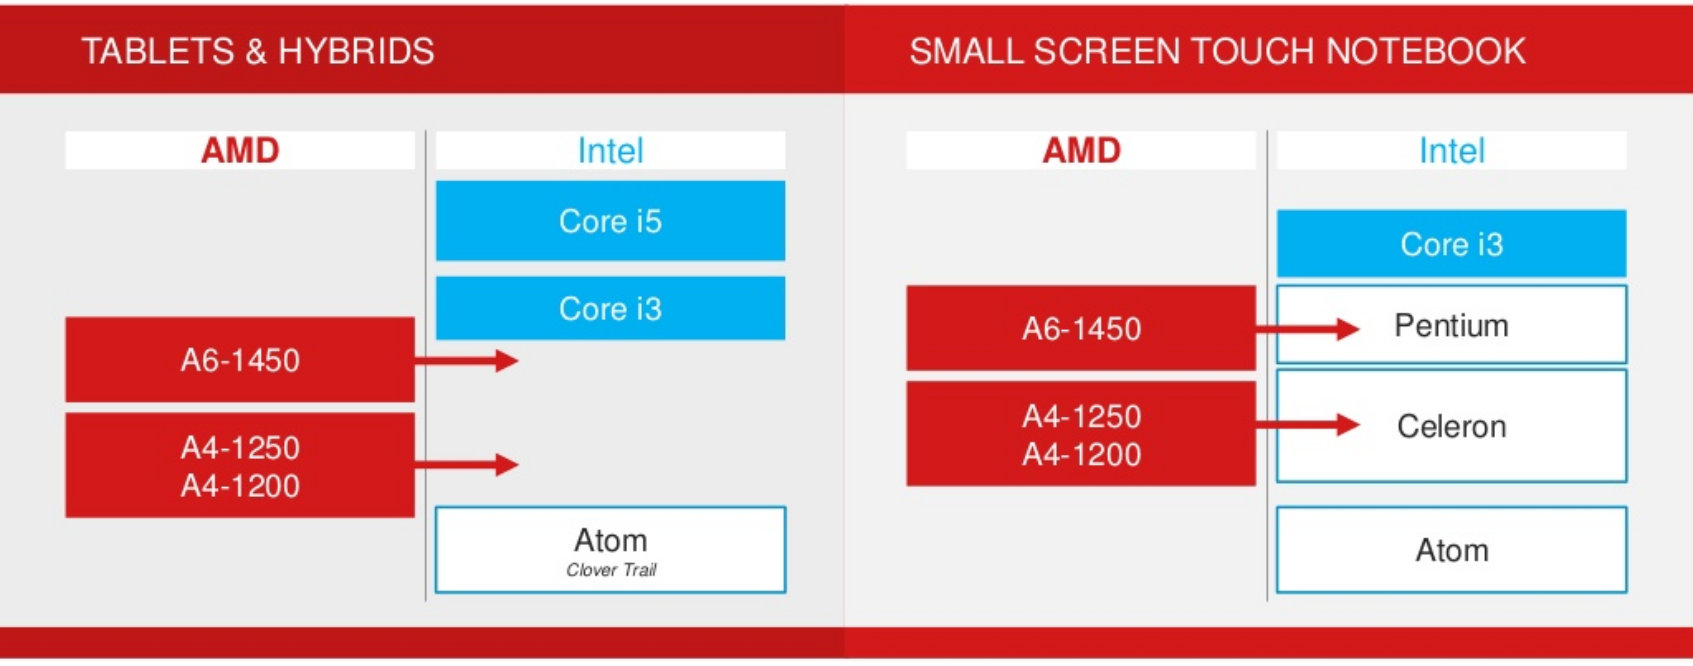 AMD Temash Performance Compared to Existing Intel Processors